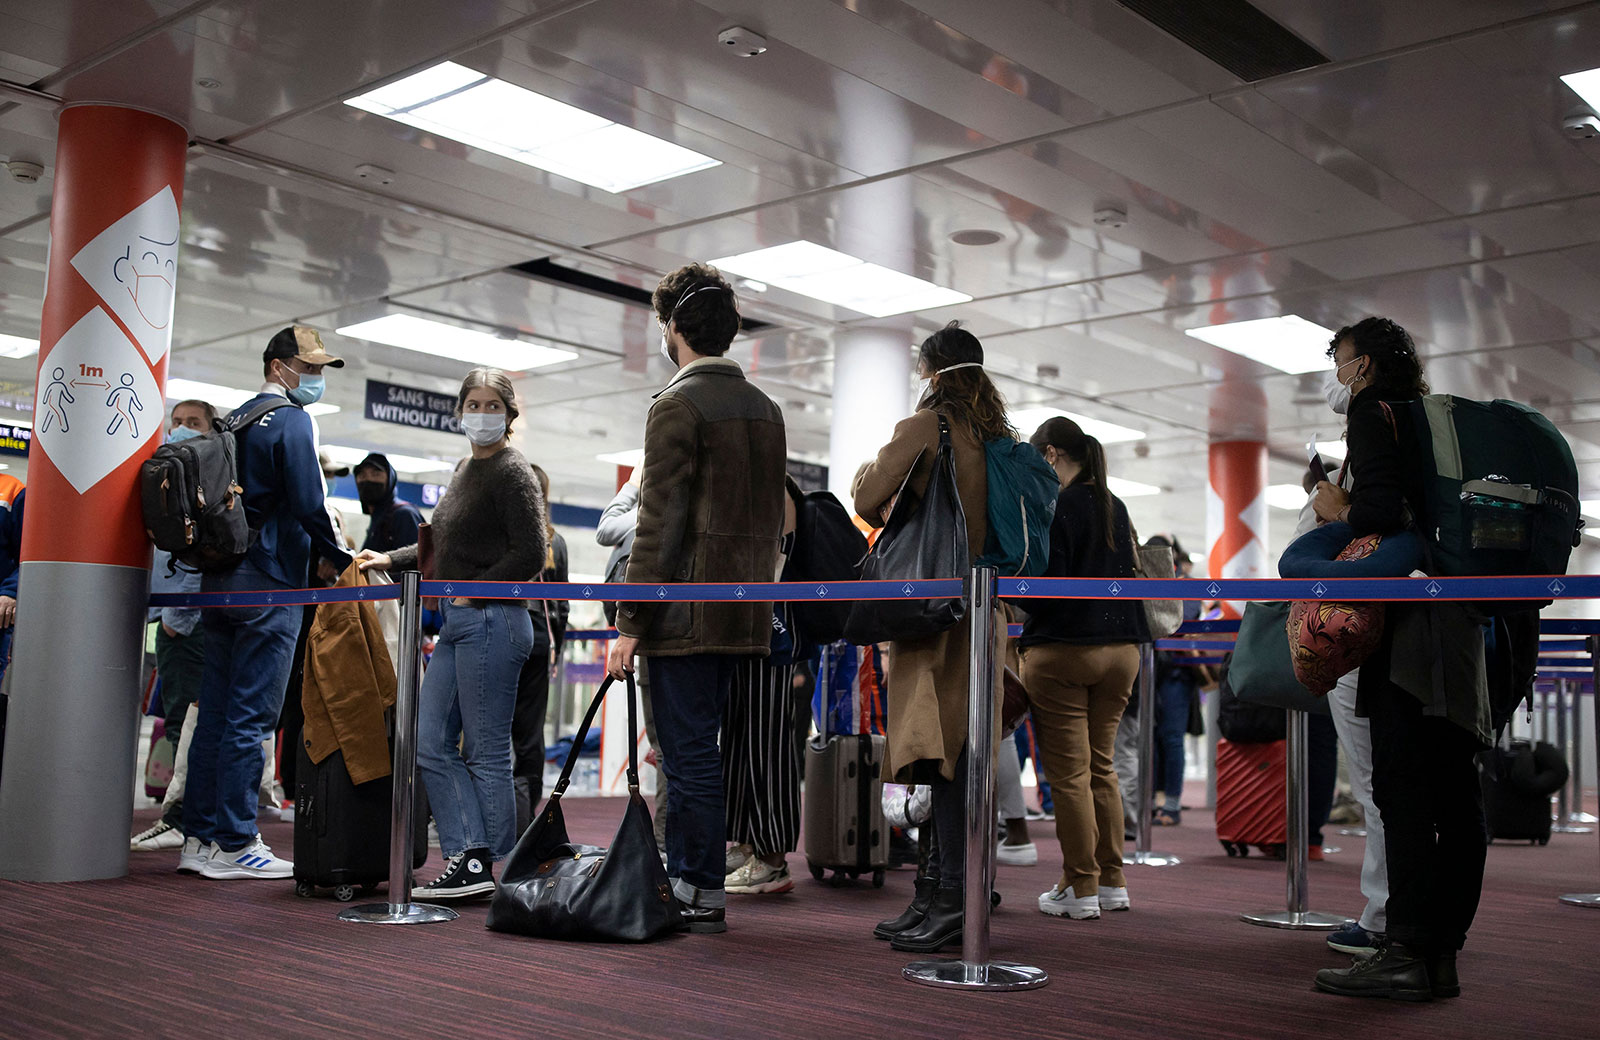 Passengers line up at the passport control area of Paris Charles de Gaulle Airport on April 25.